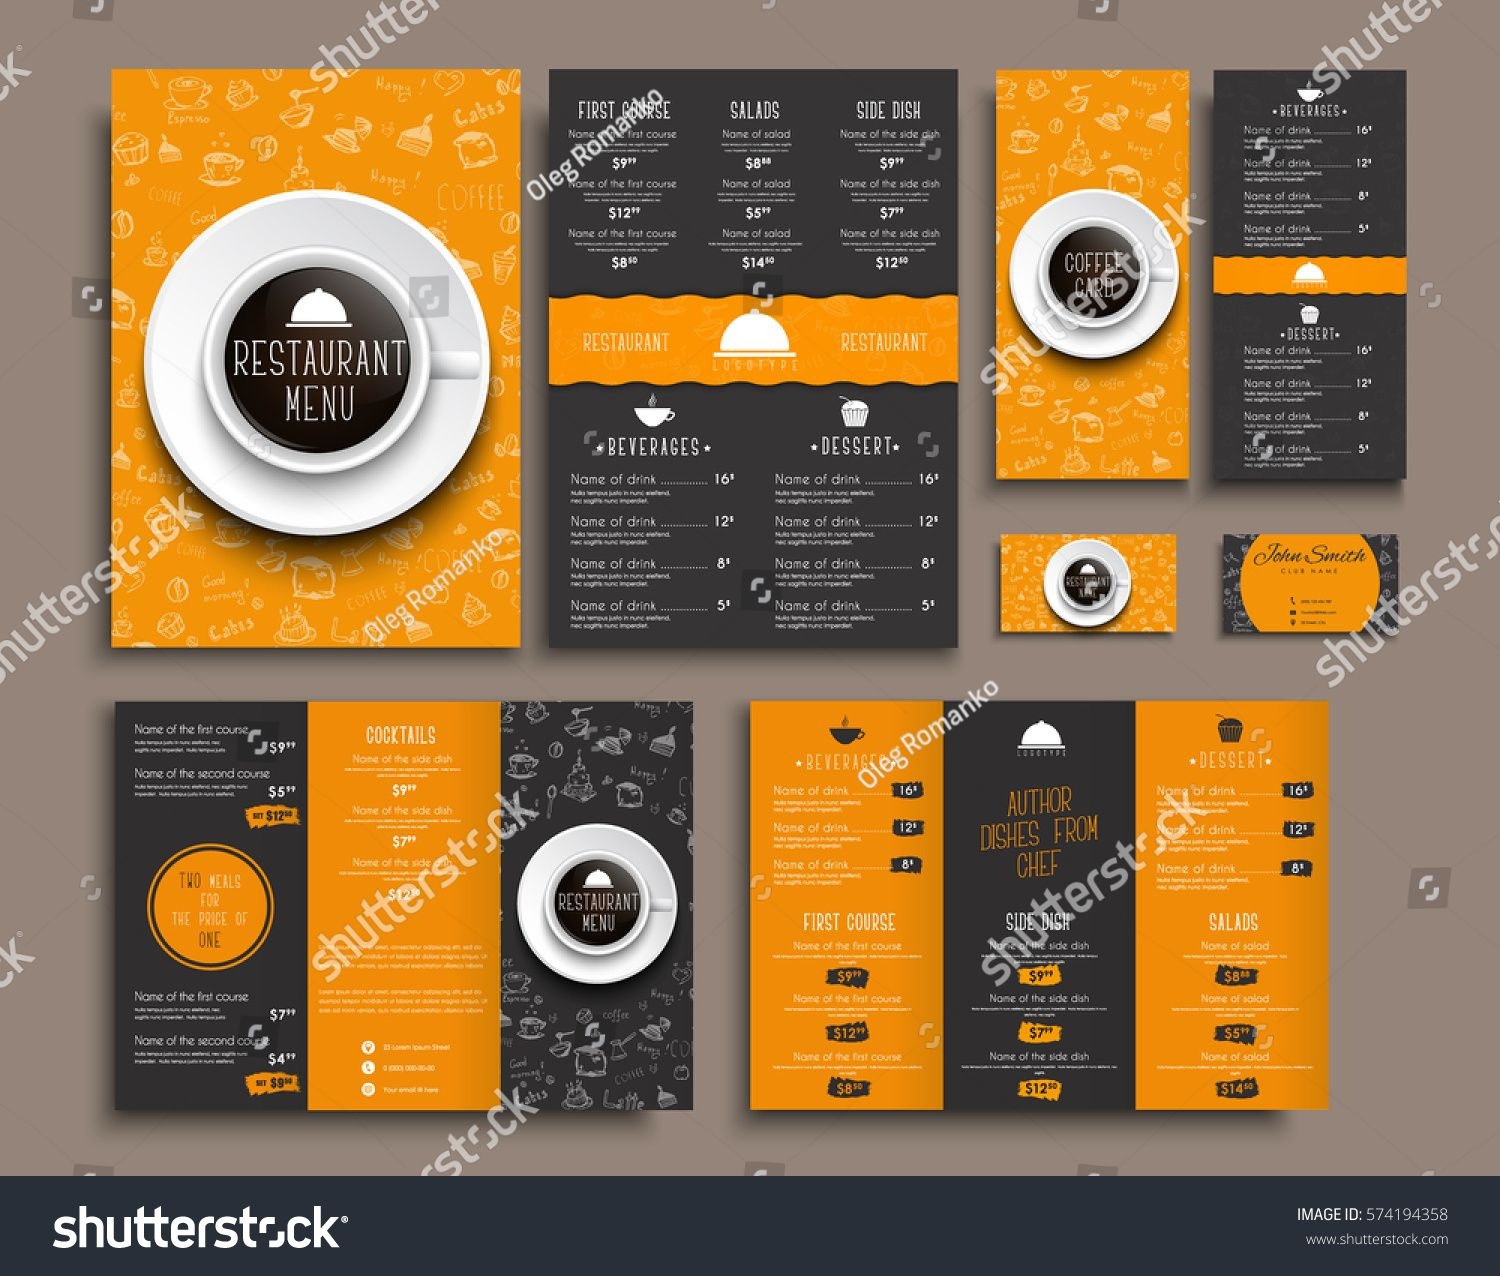 Templates Business Cards A4 Menu Folding Brochures And Flyers Narrow For A Restaurant Or Cafe The Design Of Black Ad Ad Menu Coffee Cards Brochure Food